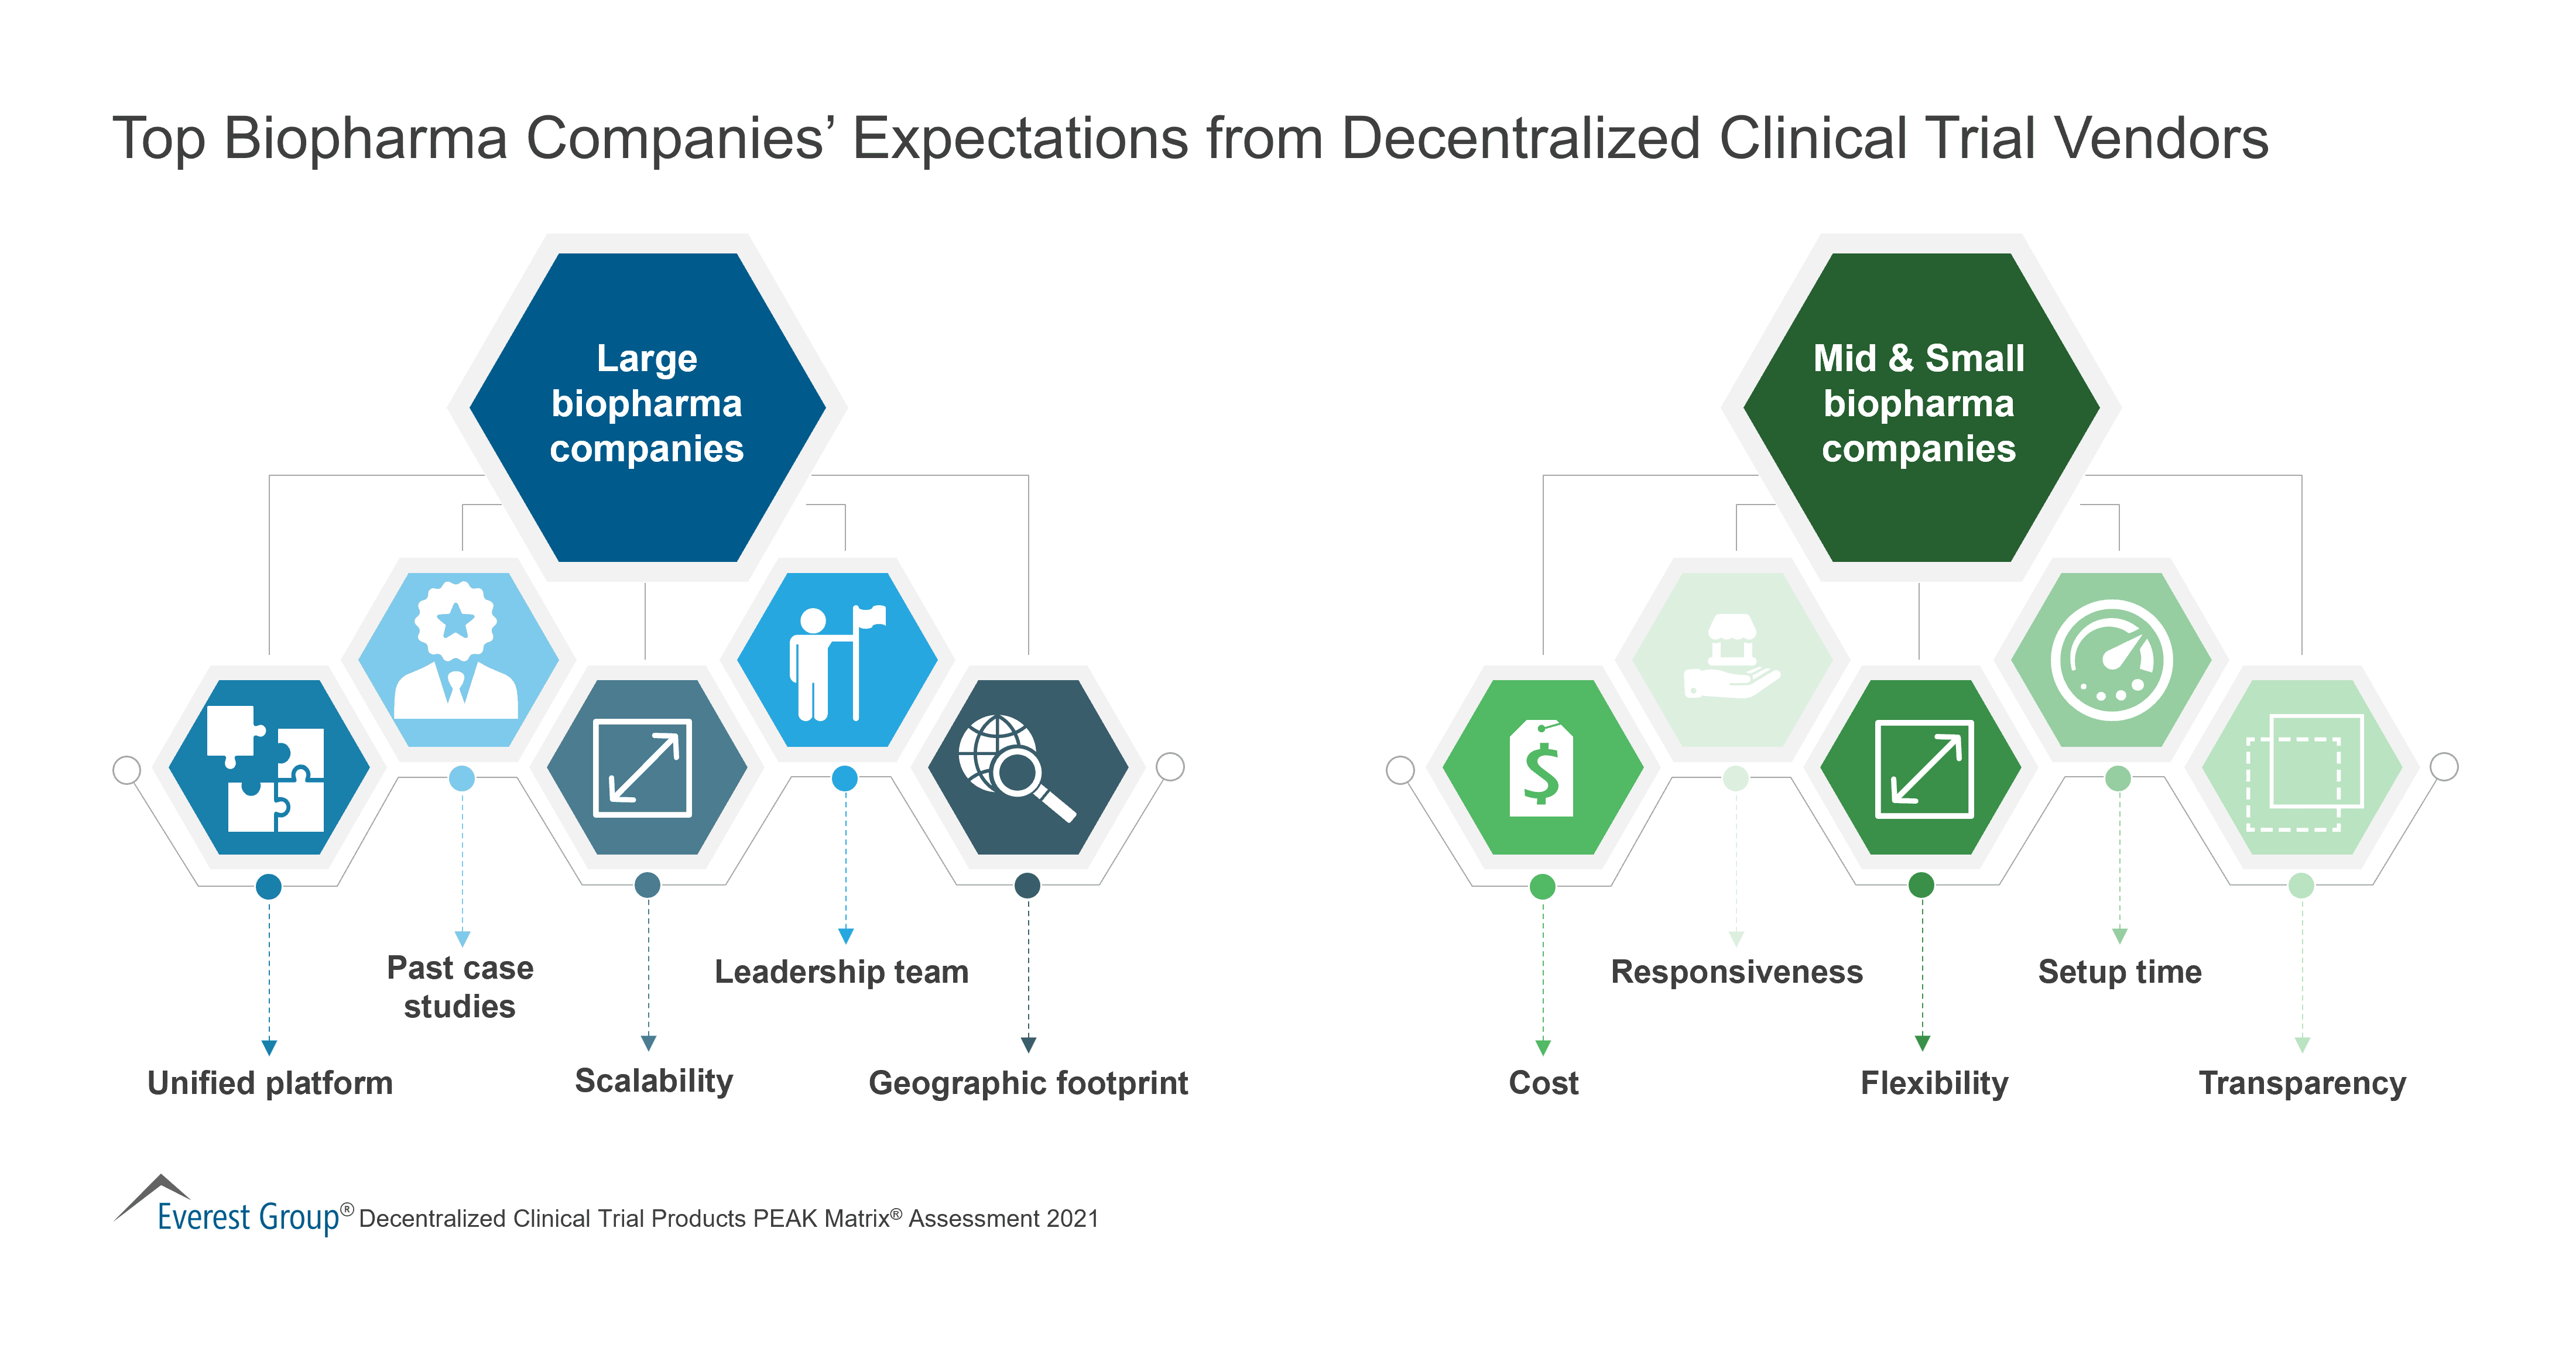 Top Biopharma Companies' Expectations from Decentralized Clinical Trial Vendors